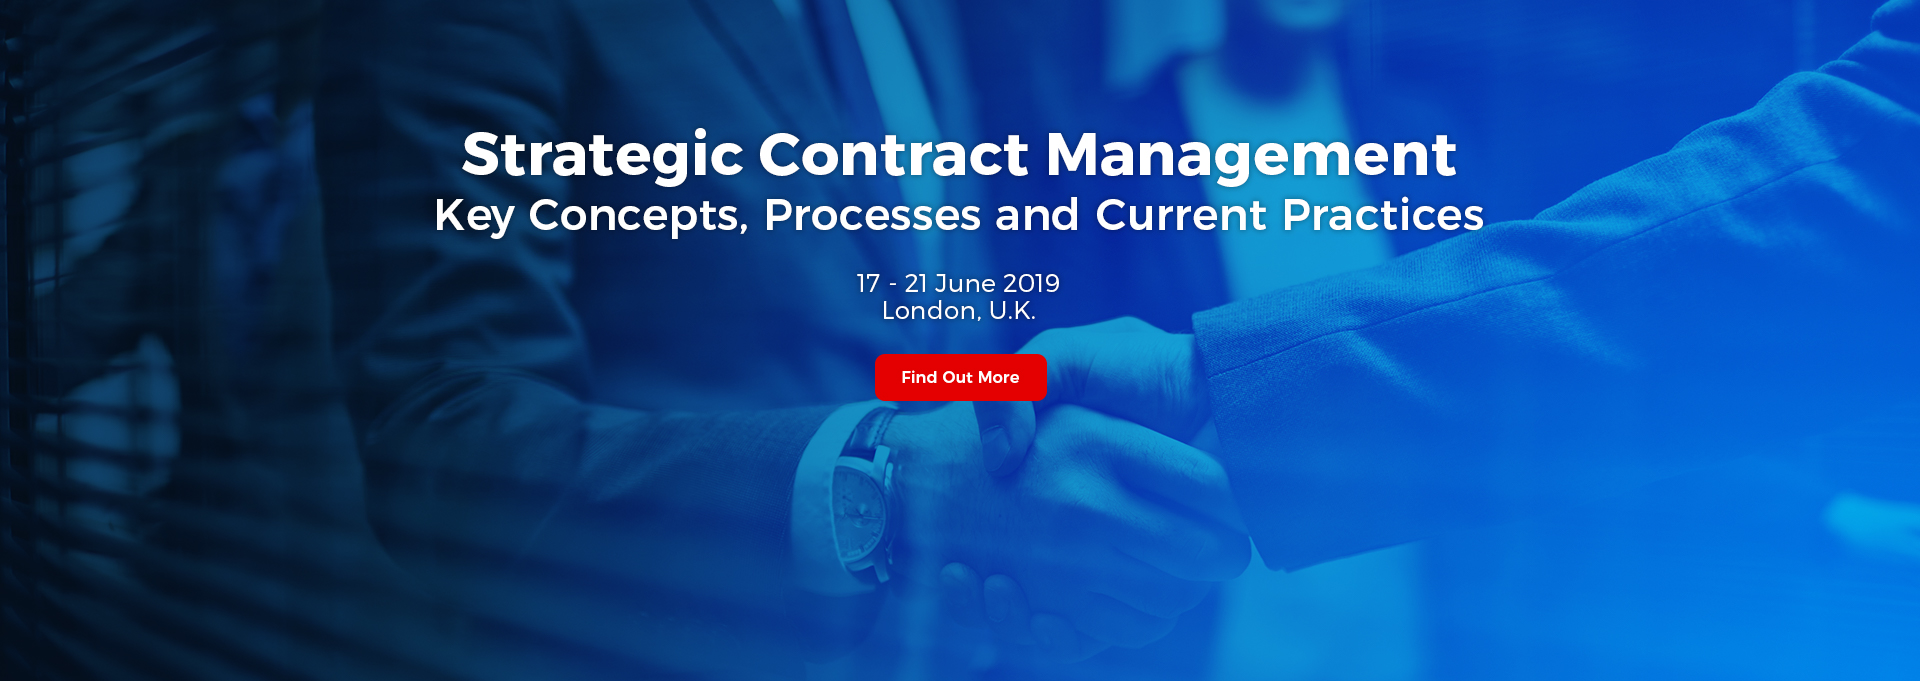 EuroMaTech Strategic Contract Management